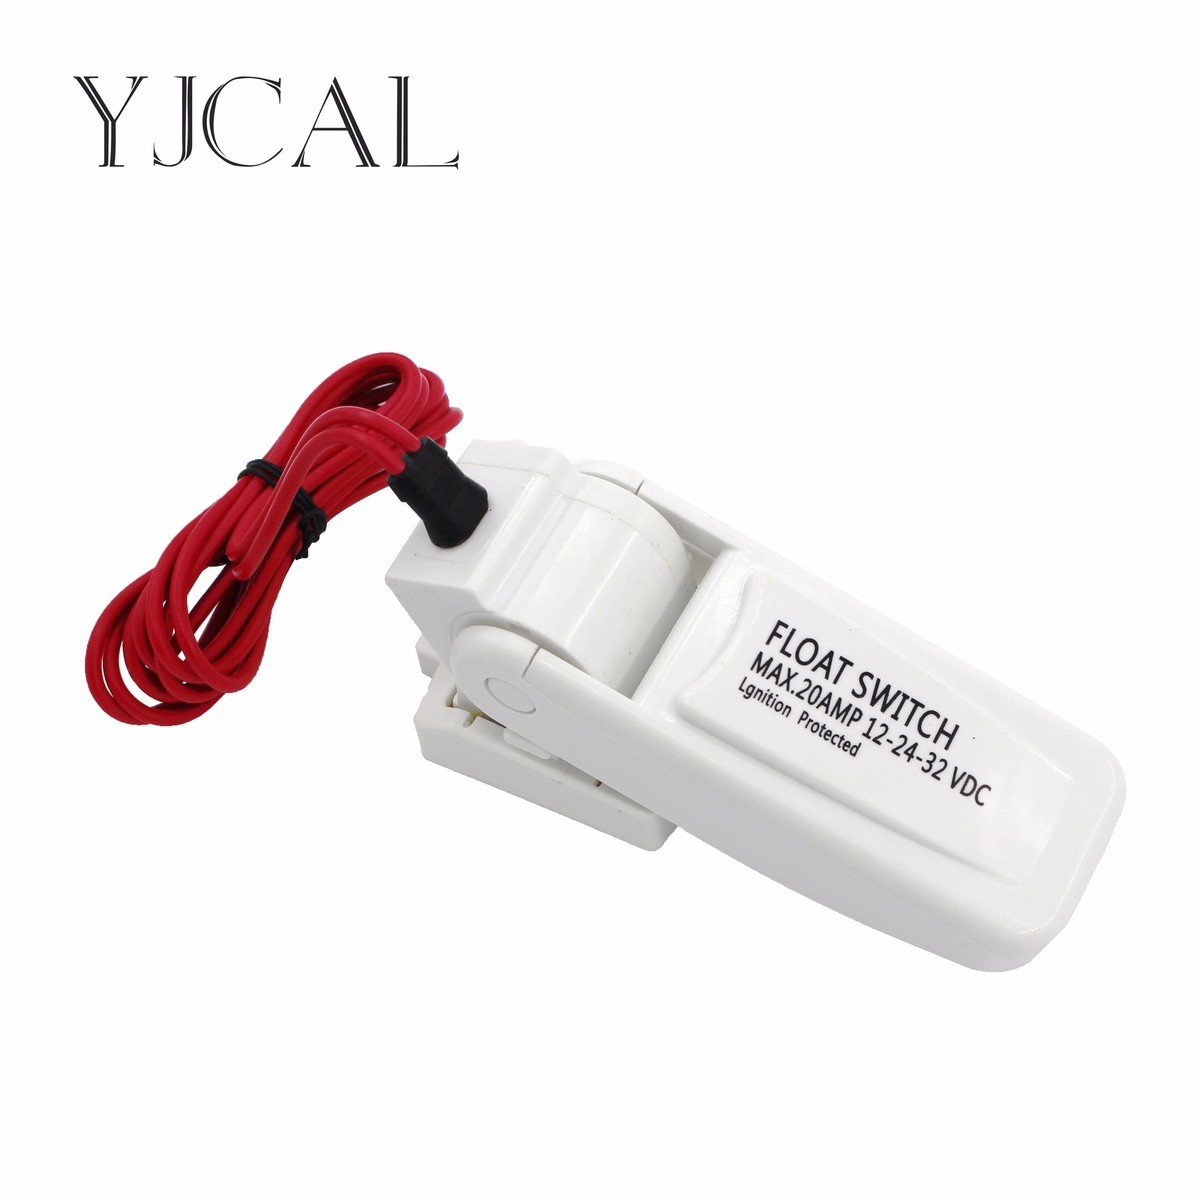 Flow Sensor Automatic Electric Bilge Water Pump Float Switch DC Liquid Auto Toggle Level Controller 20 AMP 12-24-32 VDC 4a 8a level float switch pp water level control for water pump water tower tank normally closed